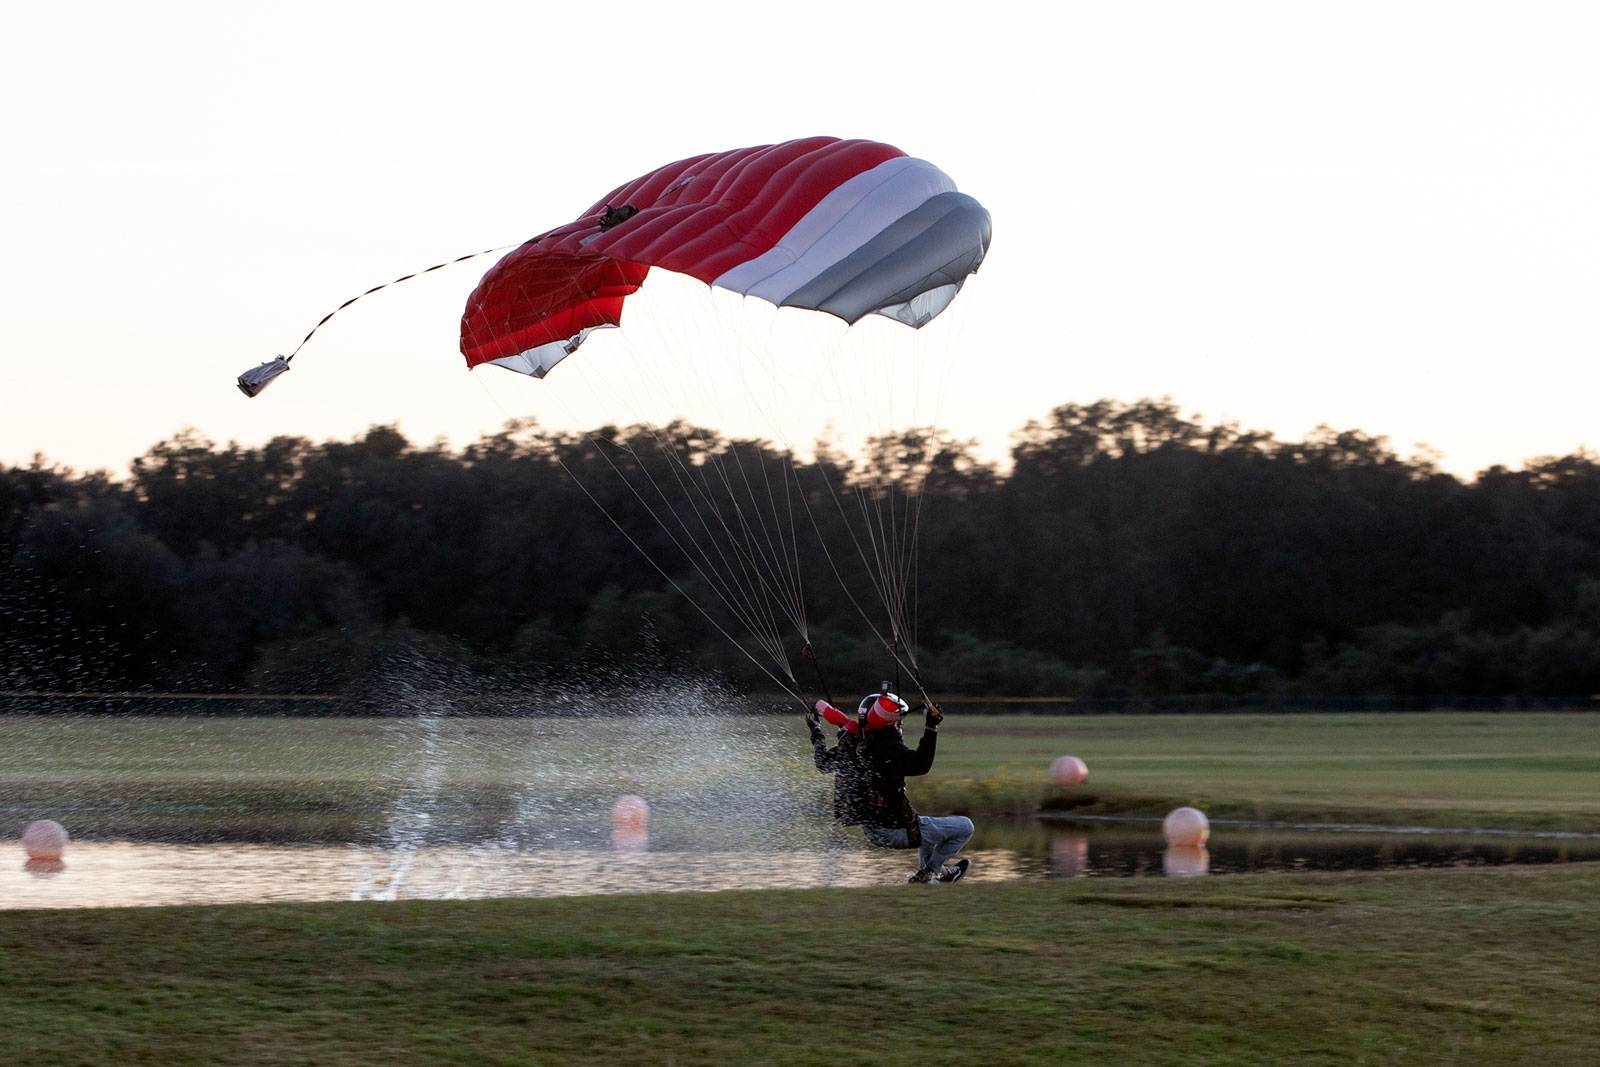 Experienced skydiver swooping in the pond at Skydive City Z-Hills